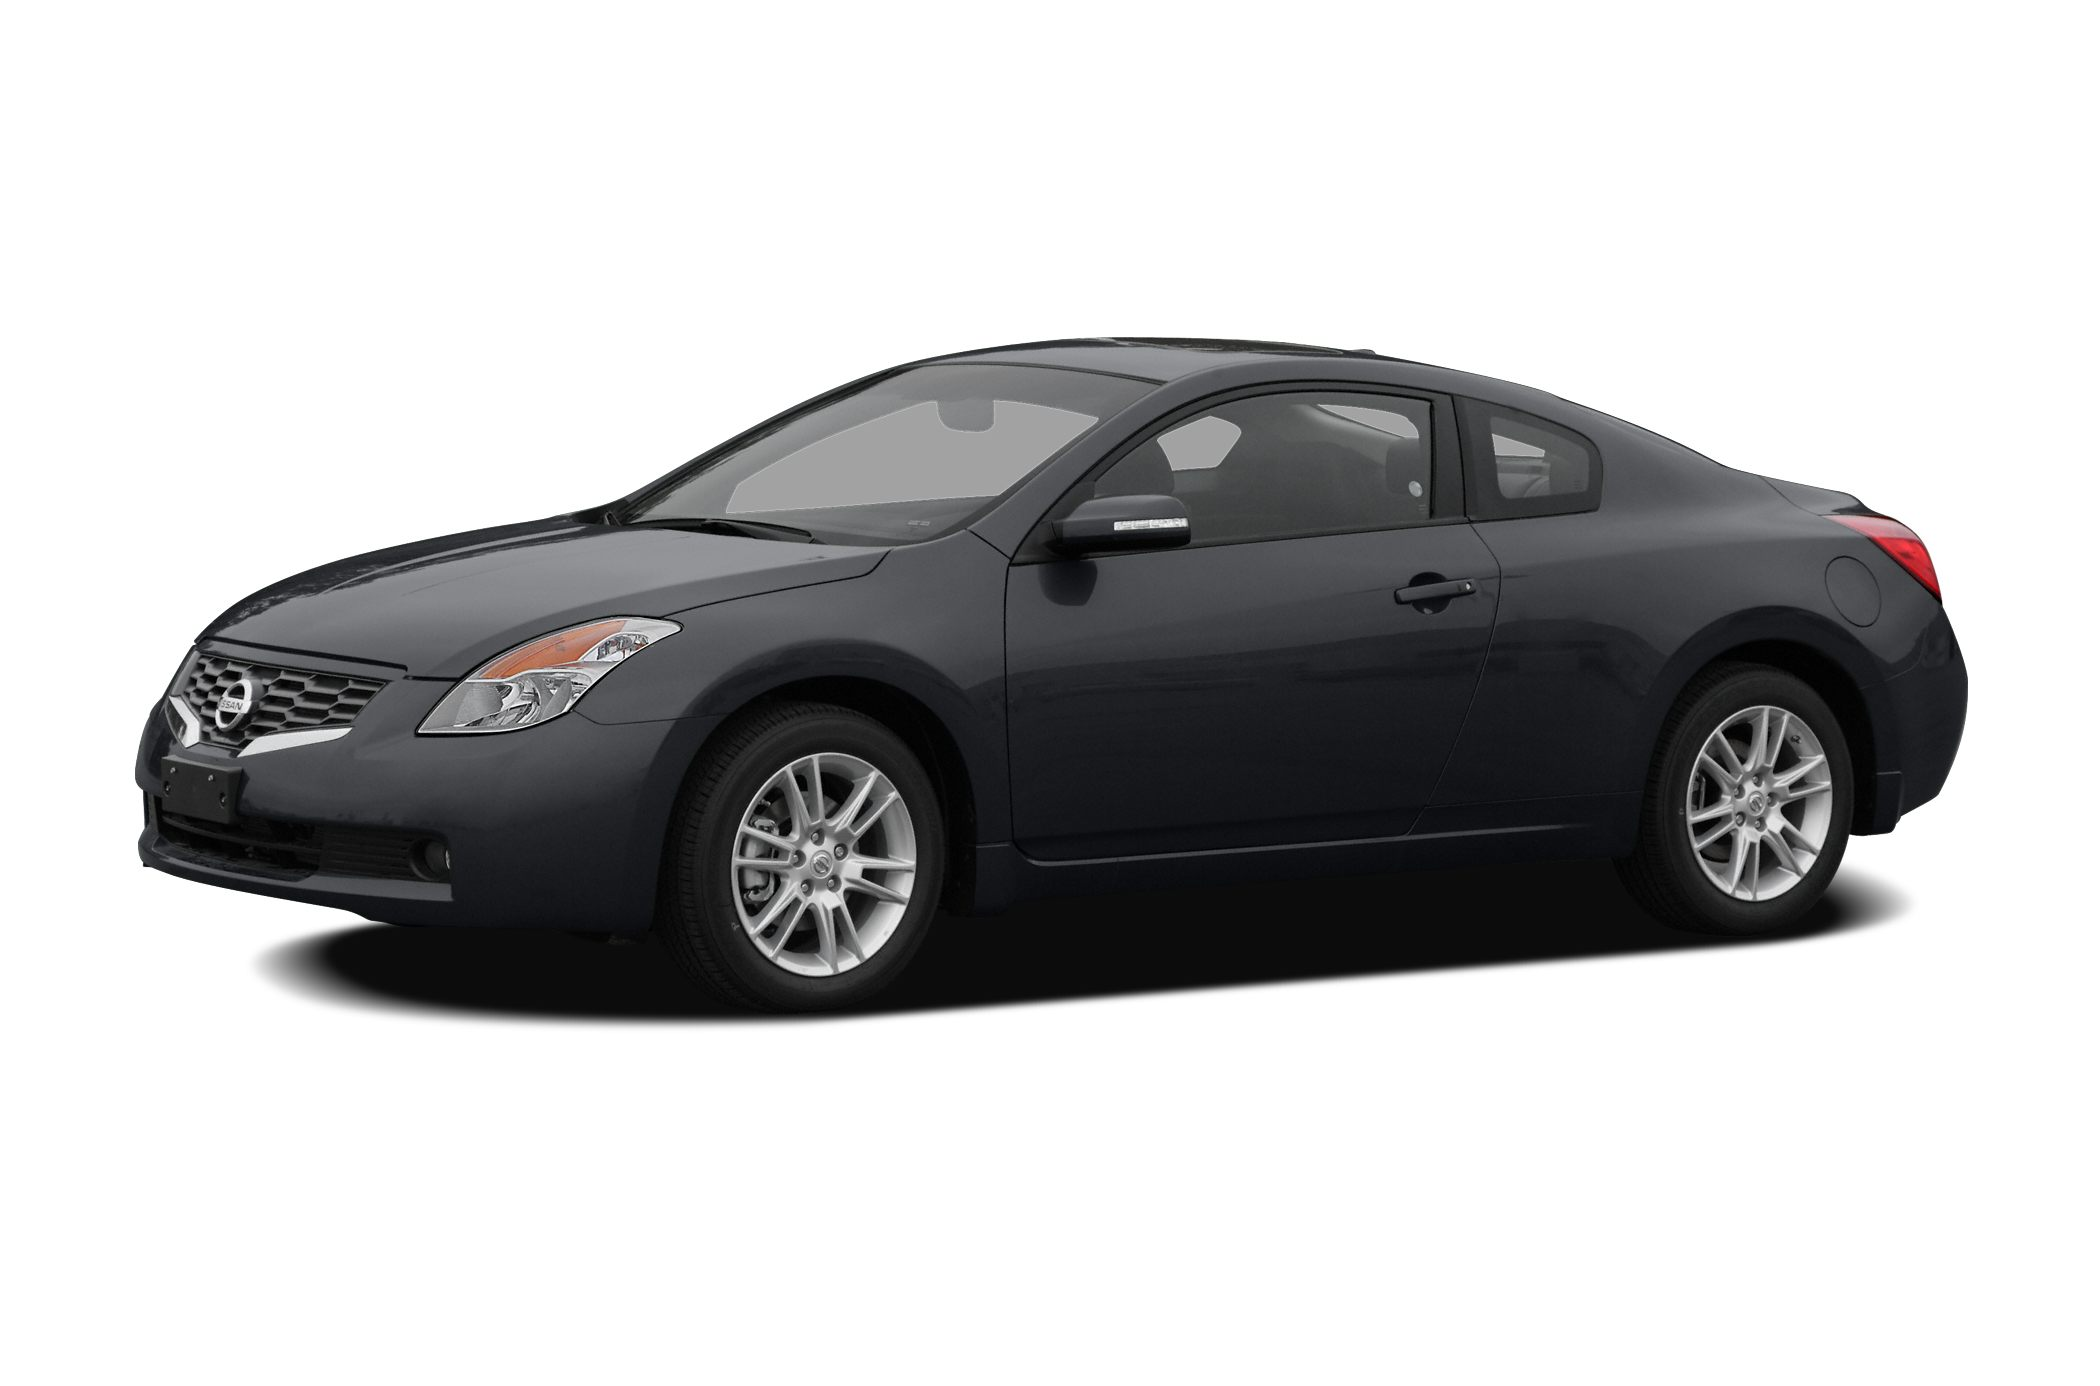 2009 nissan altima 25 s 2dr coupe specs and prices vanachro Gallery